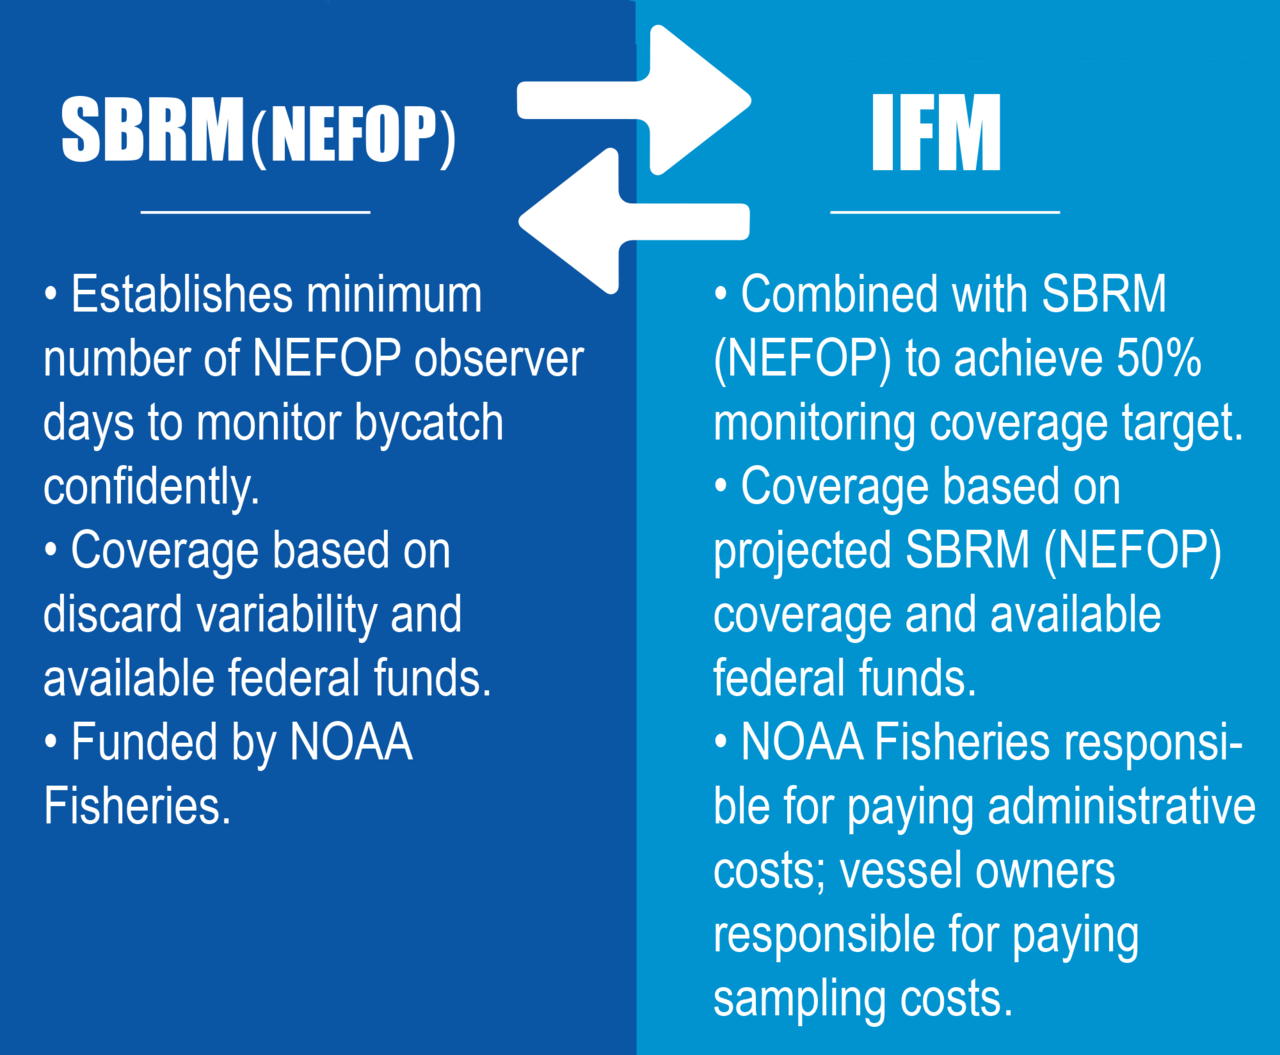 Graphic showing SBRM traits vs IFM traits: SBRM (NEFOP): Establishes minimum number of NEFOP observer days to monitor bycatch confidently; coverage is based on discard variability and available federal funds; funded by NOAA Fisheries. IFM traits: Combined with SBRM (NEFOP) to achieve 50% monitoring coverage target; Coverage based on projected SBRM (NEFOP) coverage and available federal funds; NOAA Fisheries responsible for paying administrative costs; vessel owners responsible for paying sampling costs.